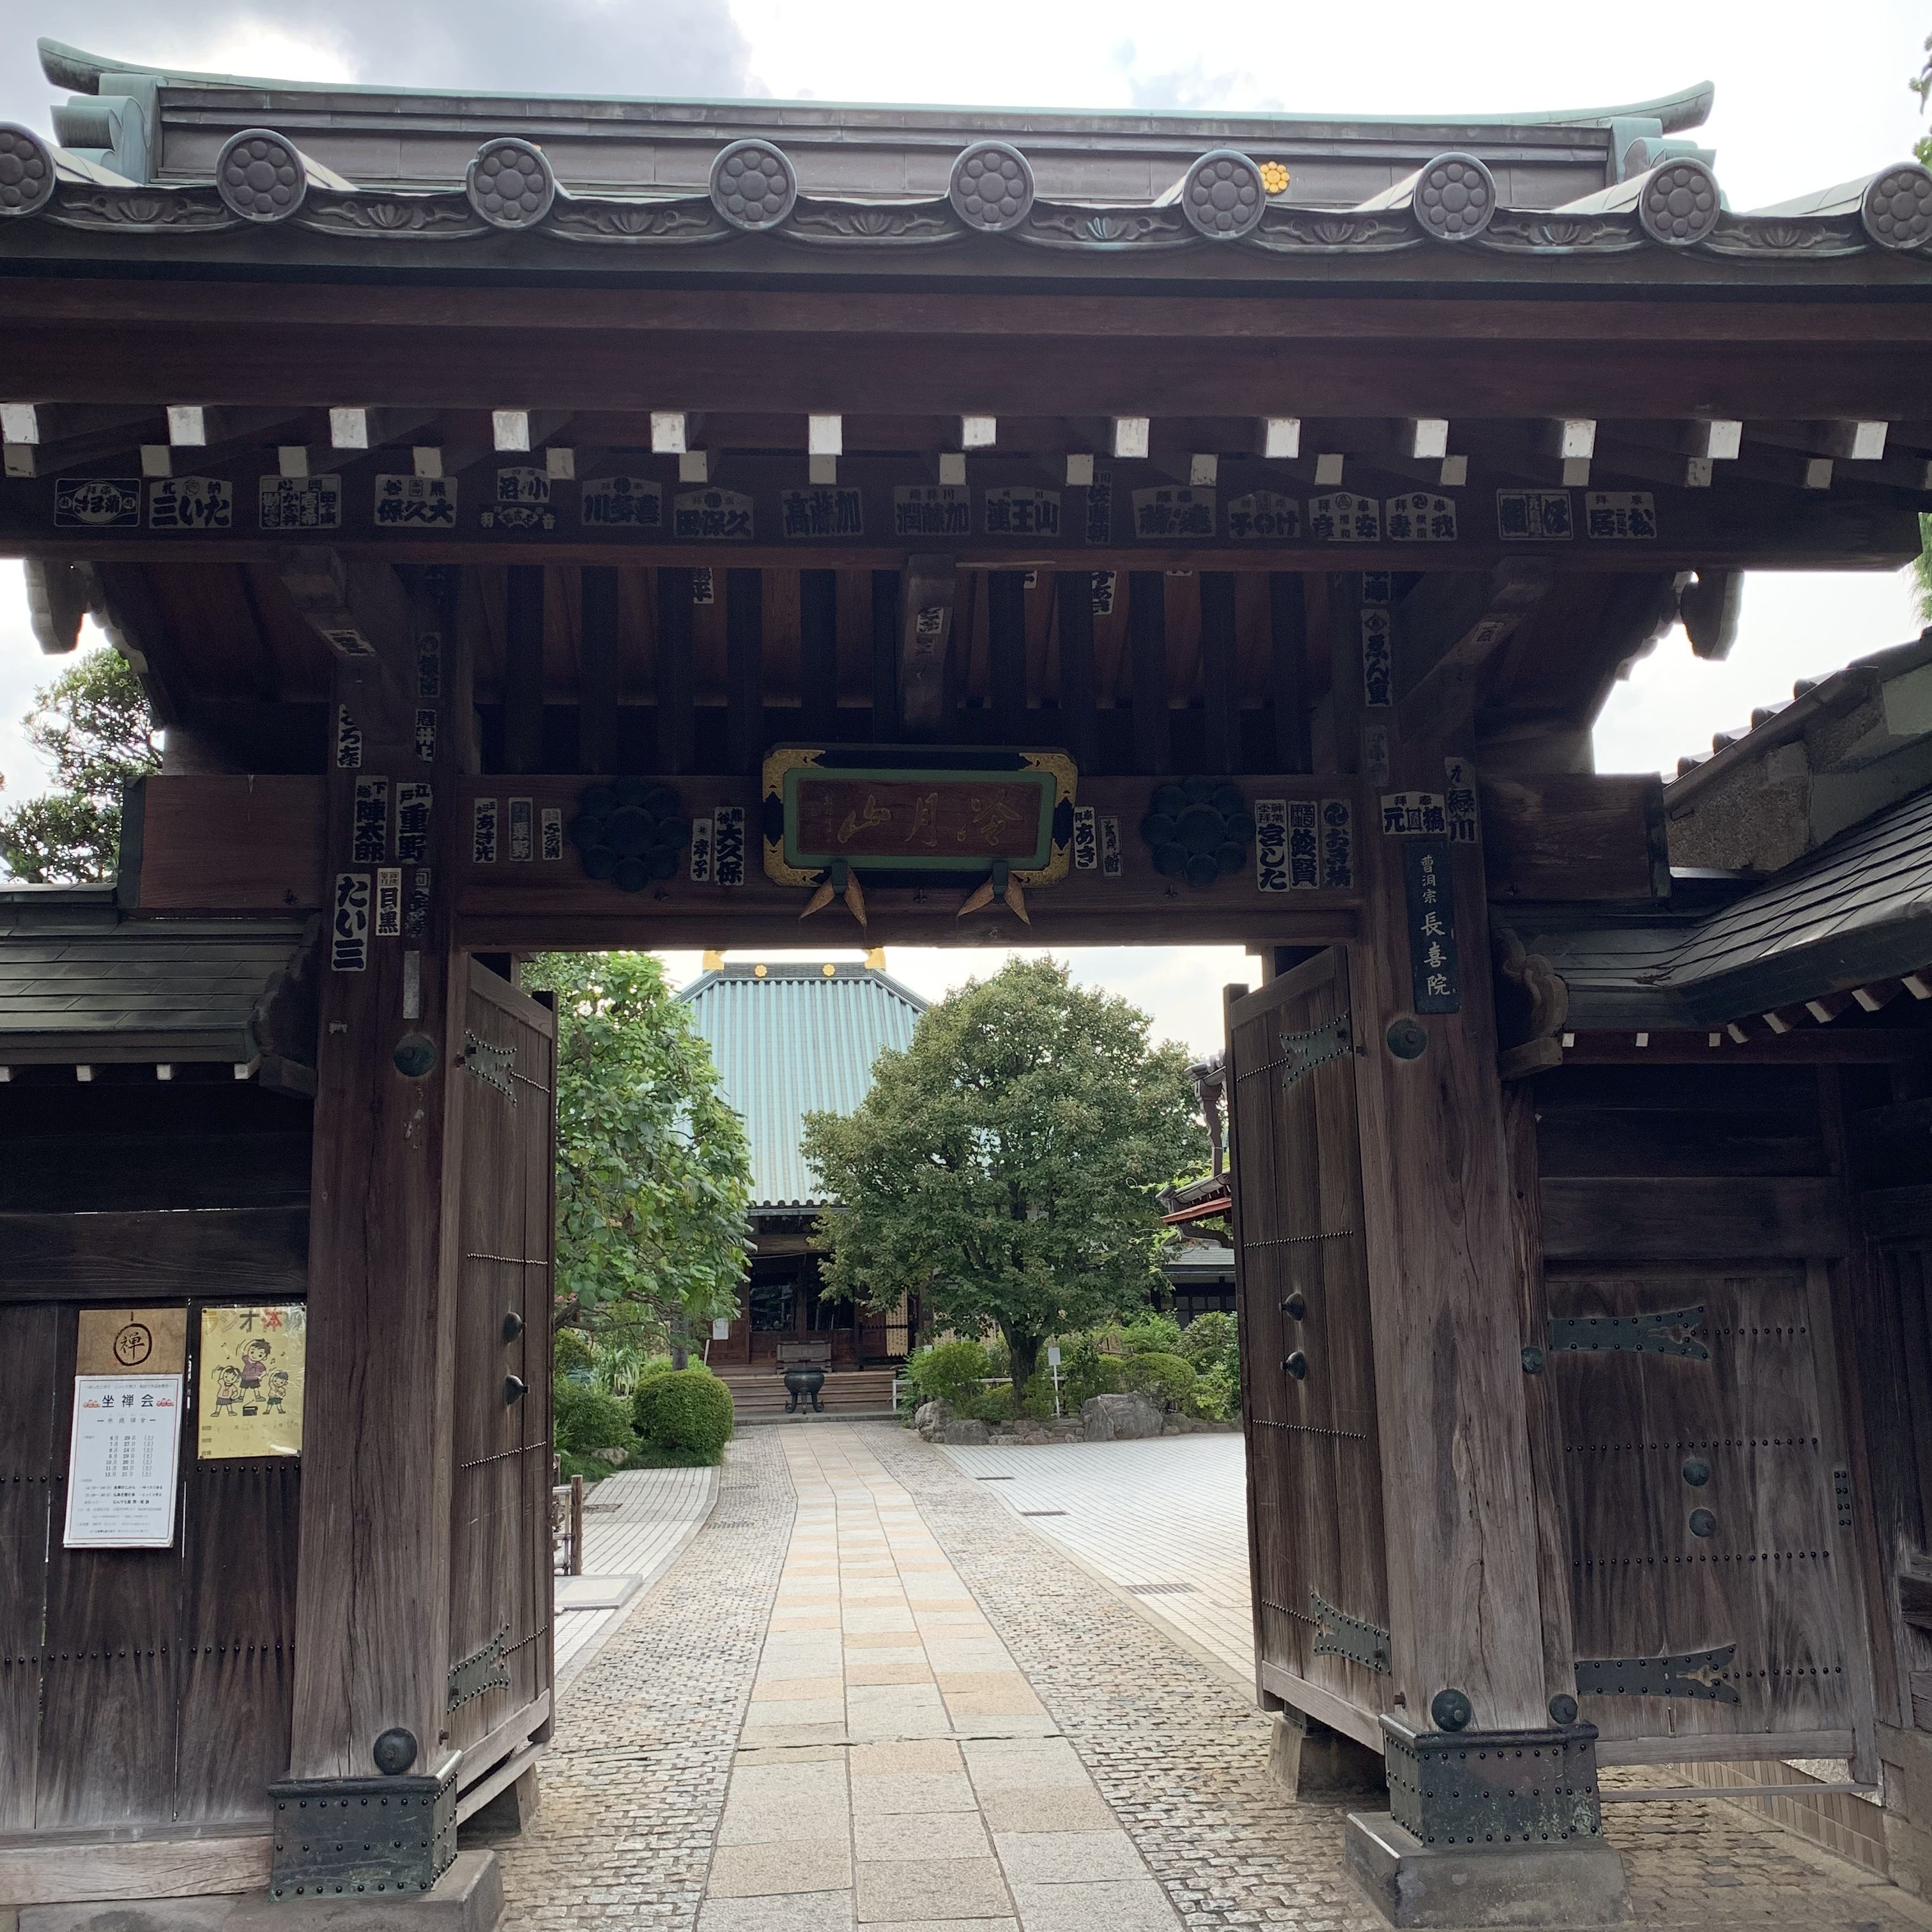 Chyouki-in